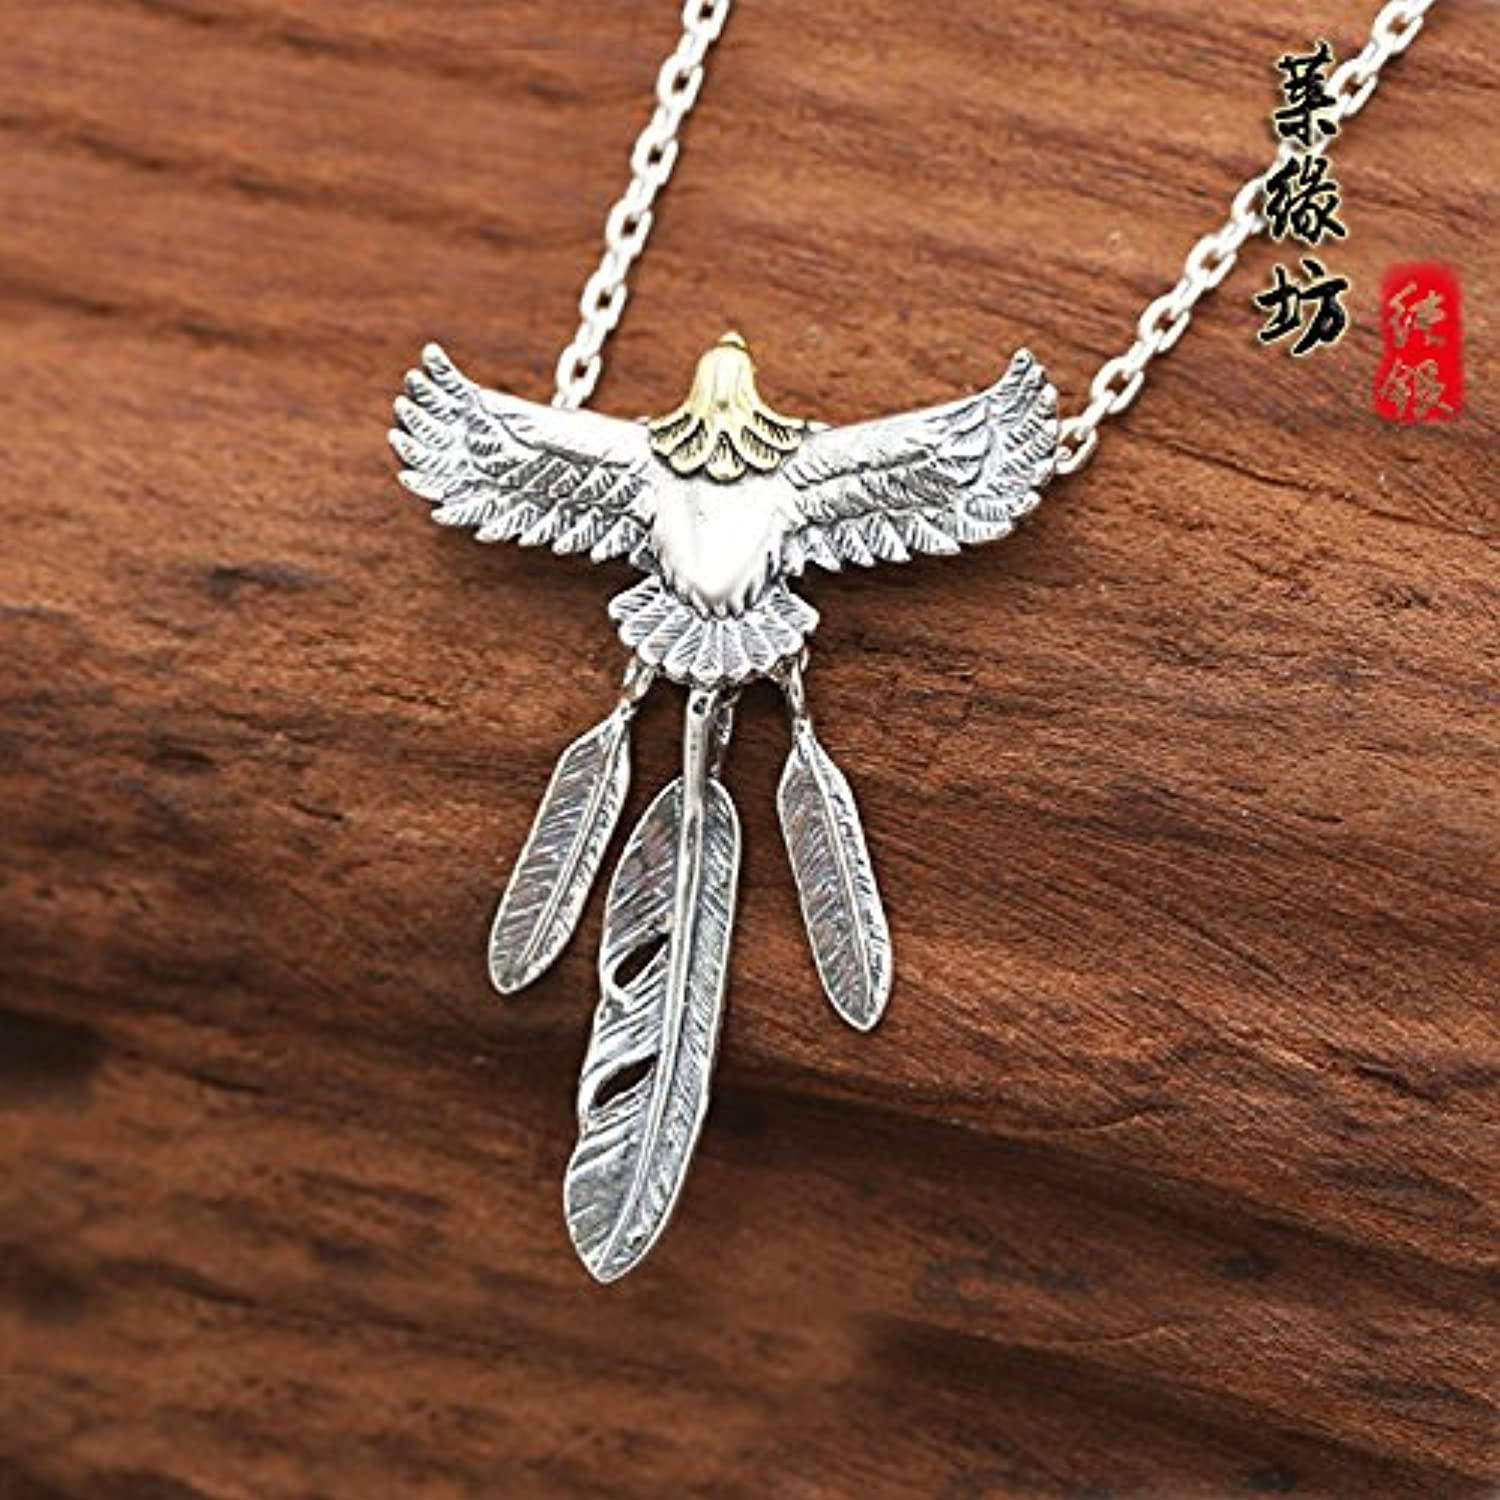 Silver Jewelry Takahashi Eagle Feather Necklace Pendant Tide Men and Women Girls Models 925 Silver Necklace Pendant Chain Angle Too